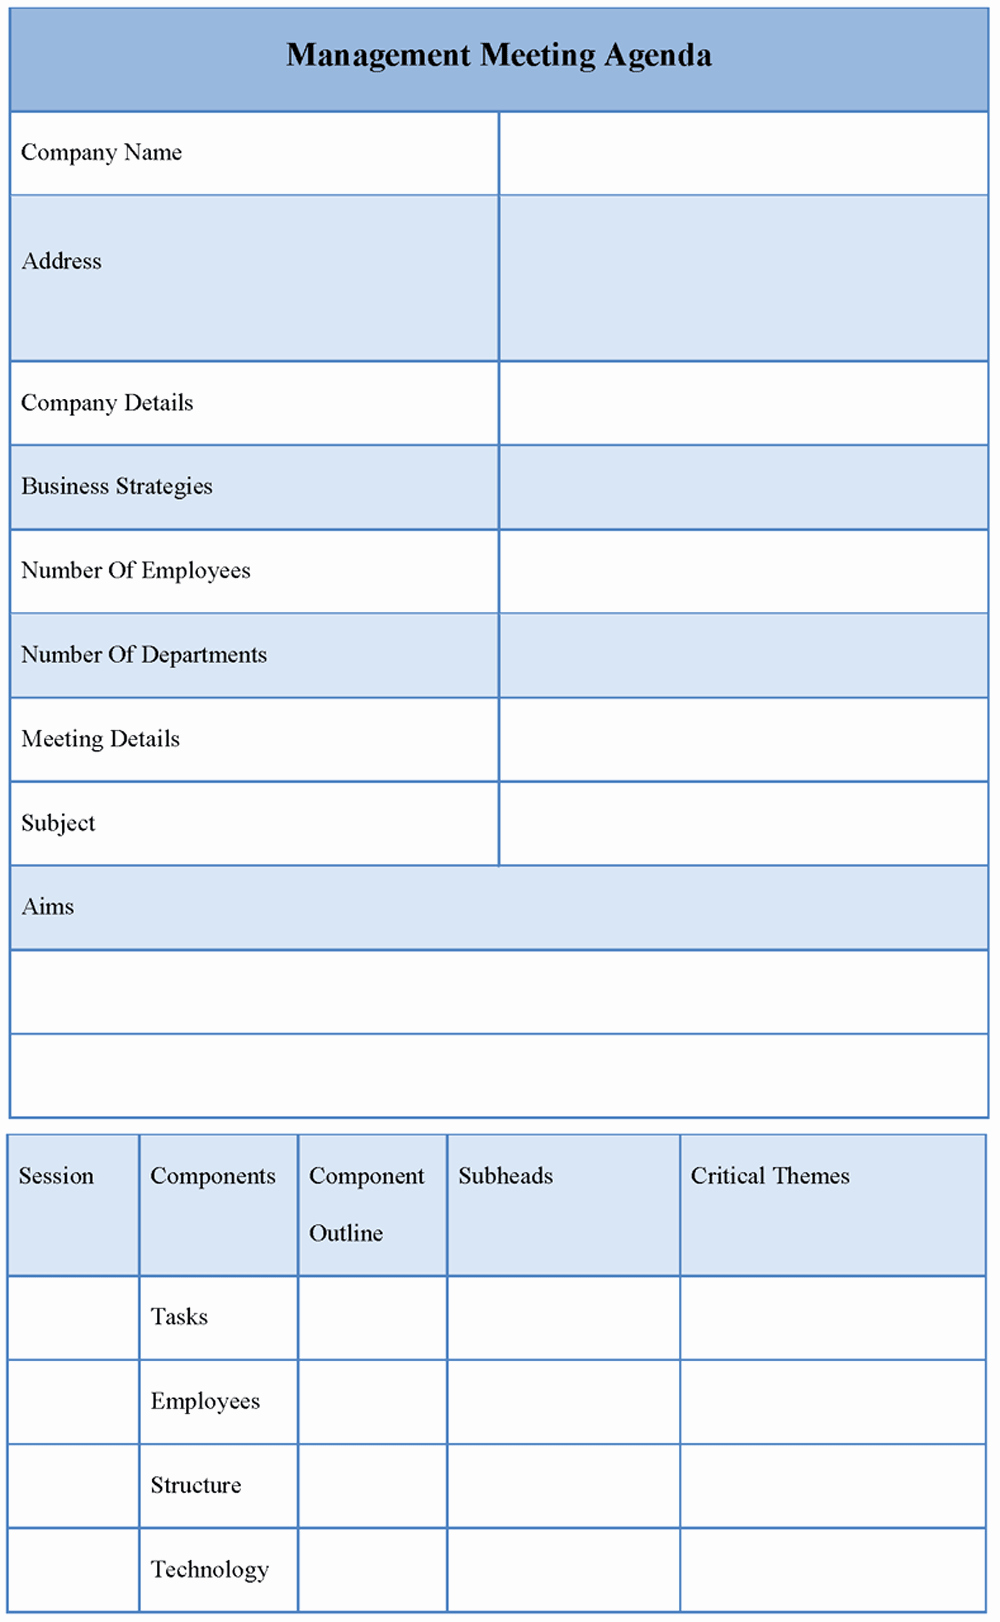 Examples Of Meeting Agenda Templates New Agenda Template for Management Meeting Sample Of